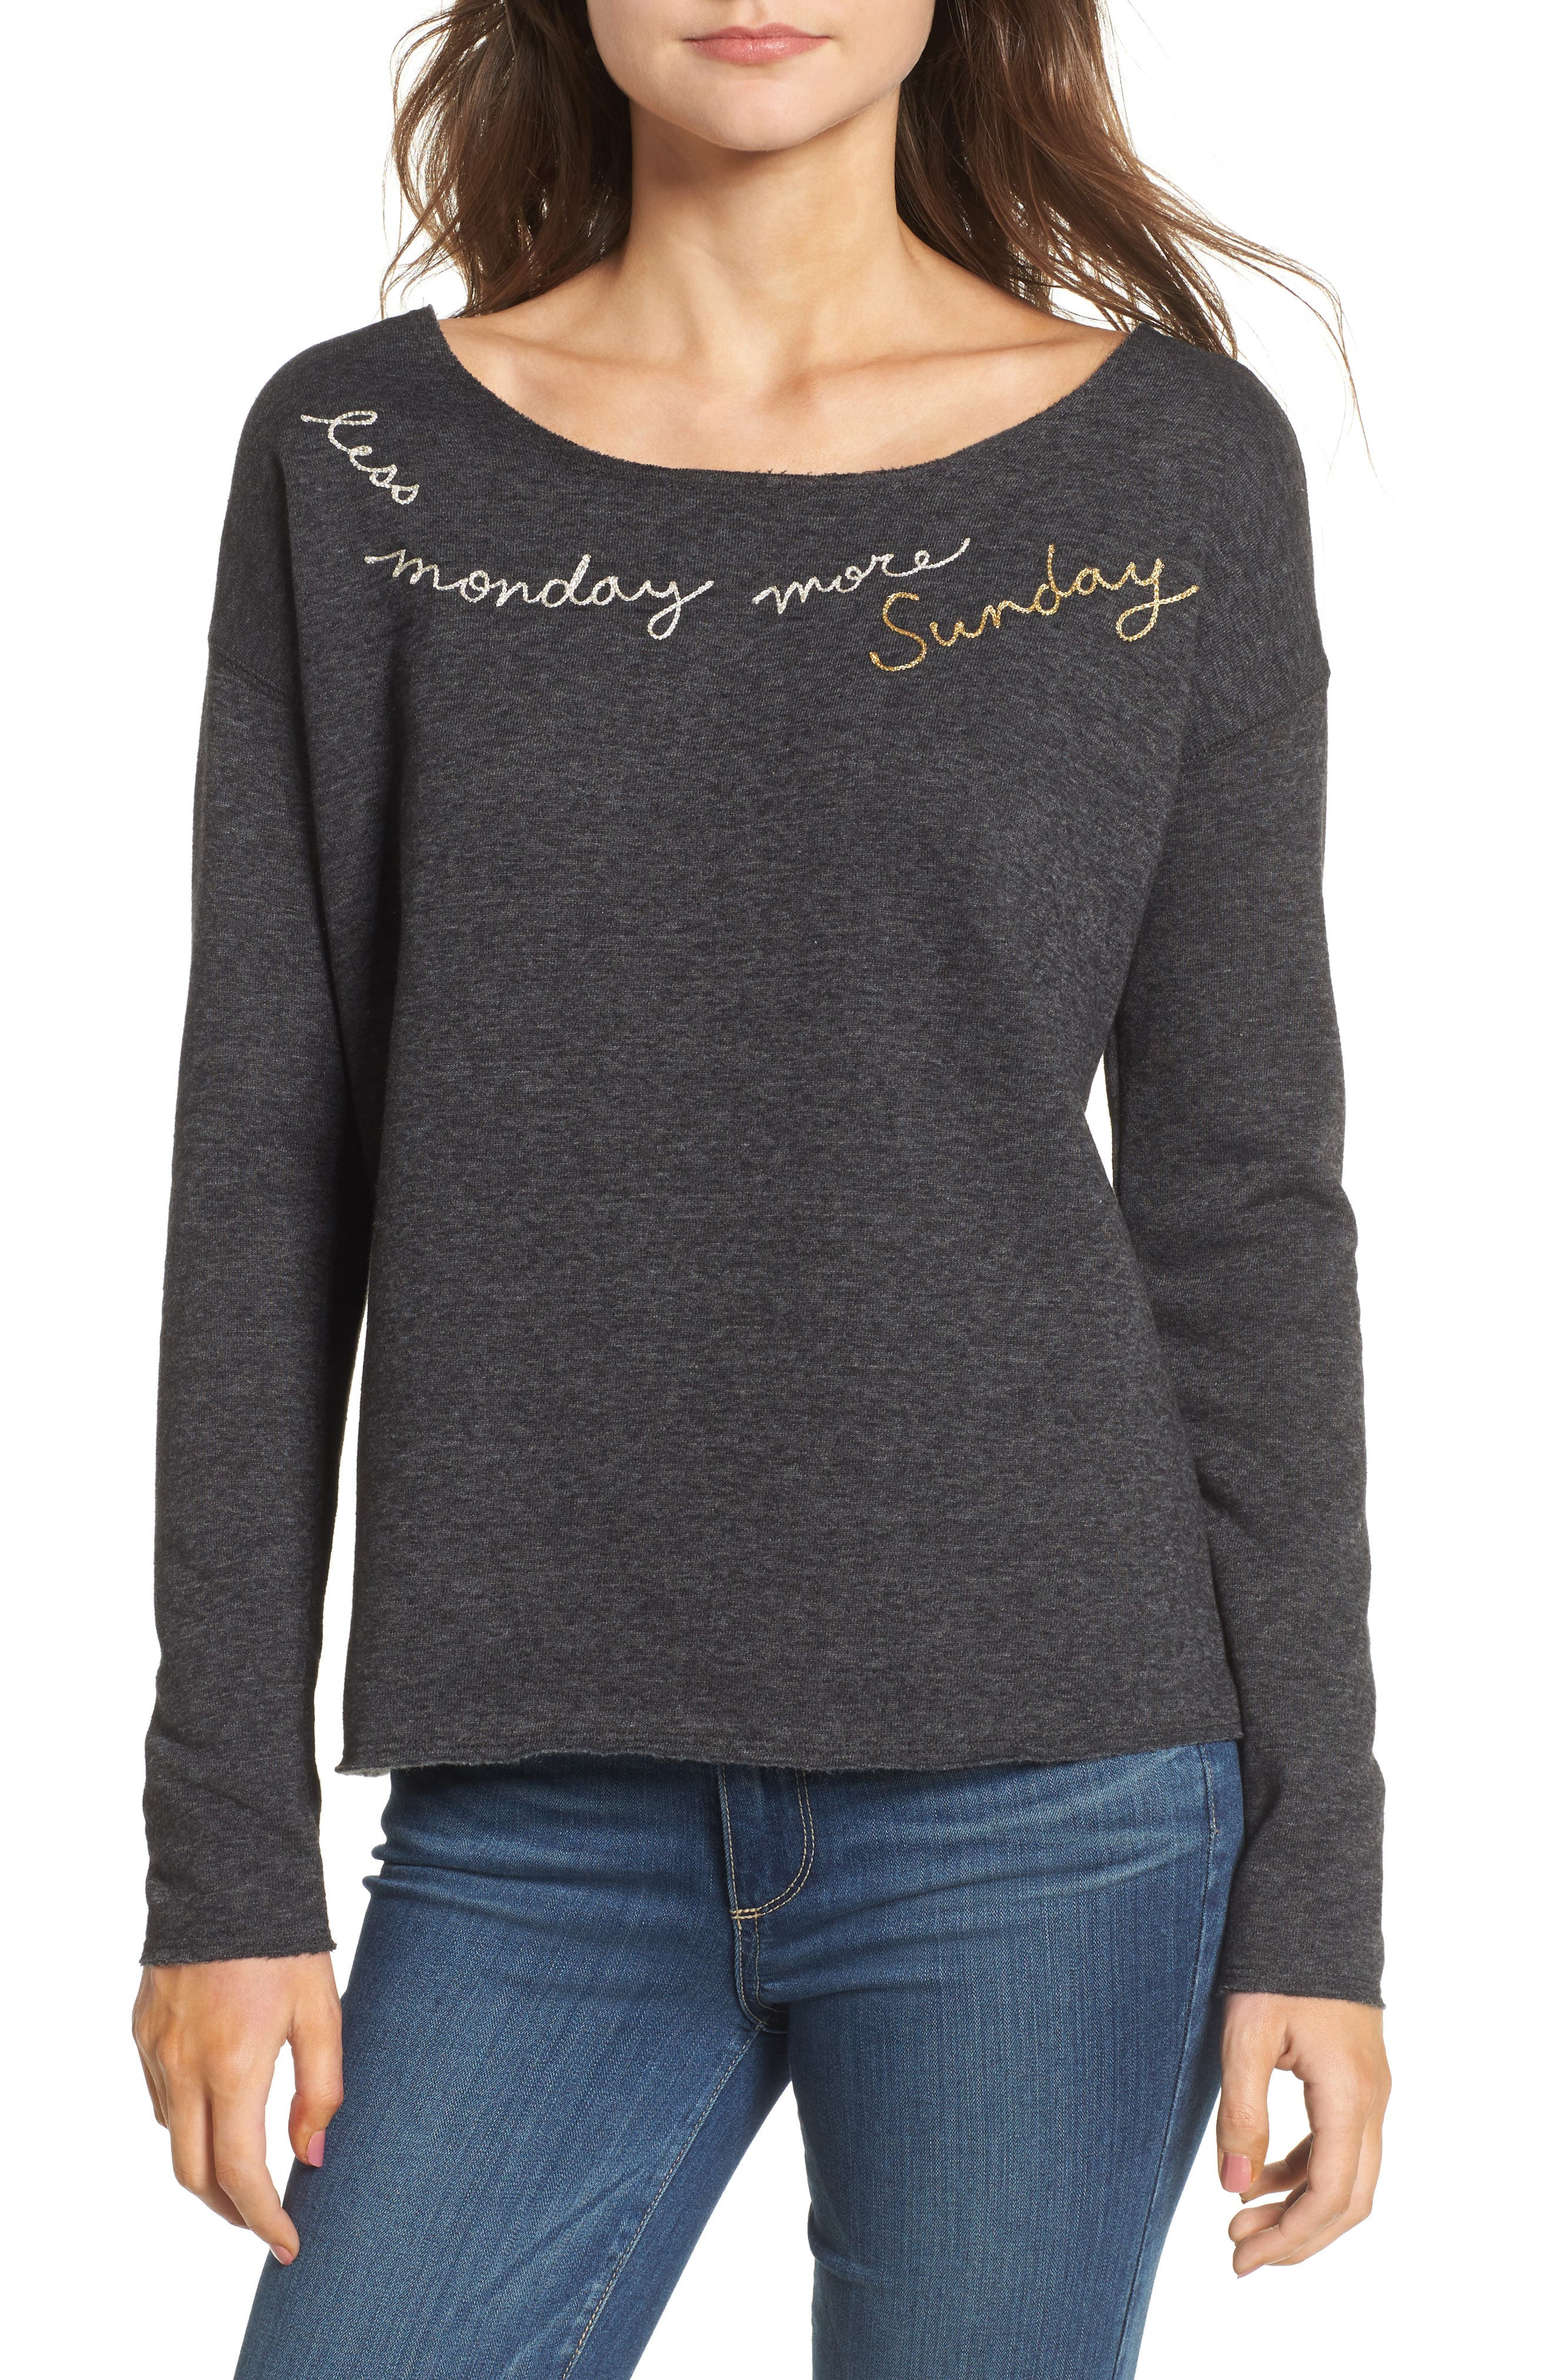 Less Monday More Sunday Sweatshirt,                         Main,                         color, Charcoal